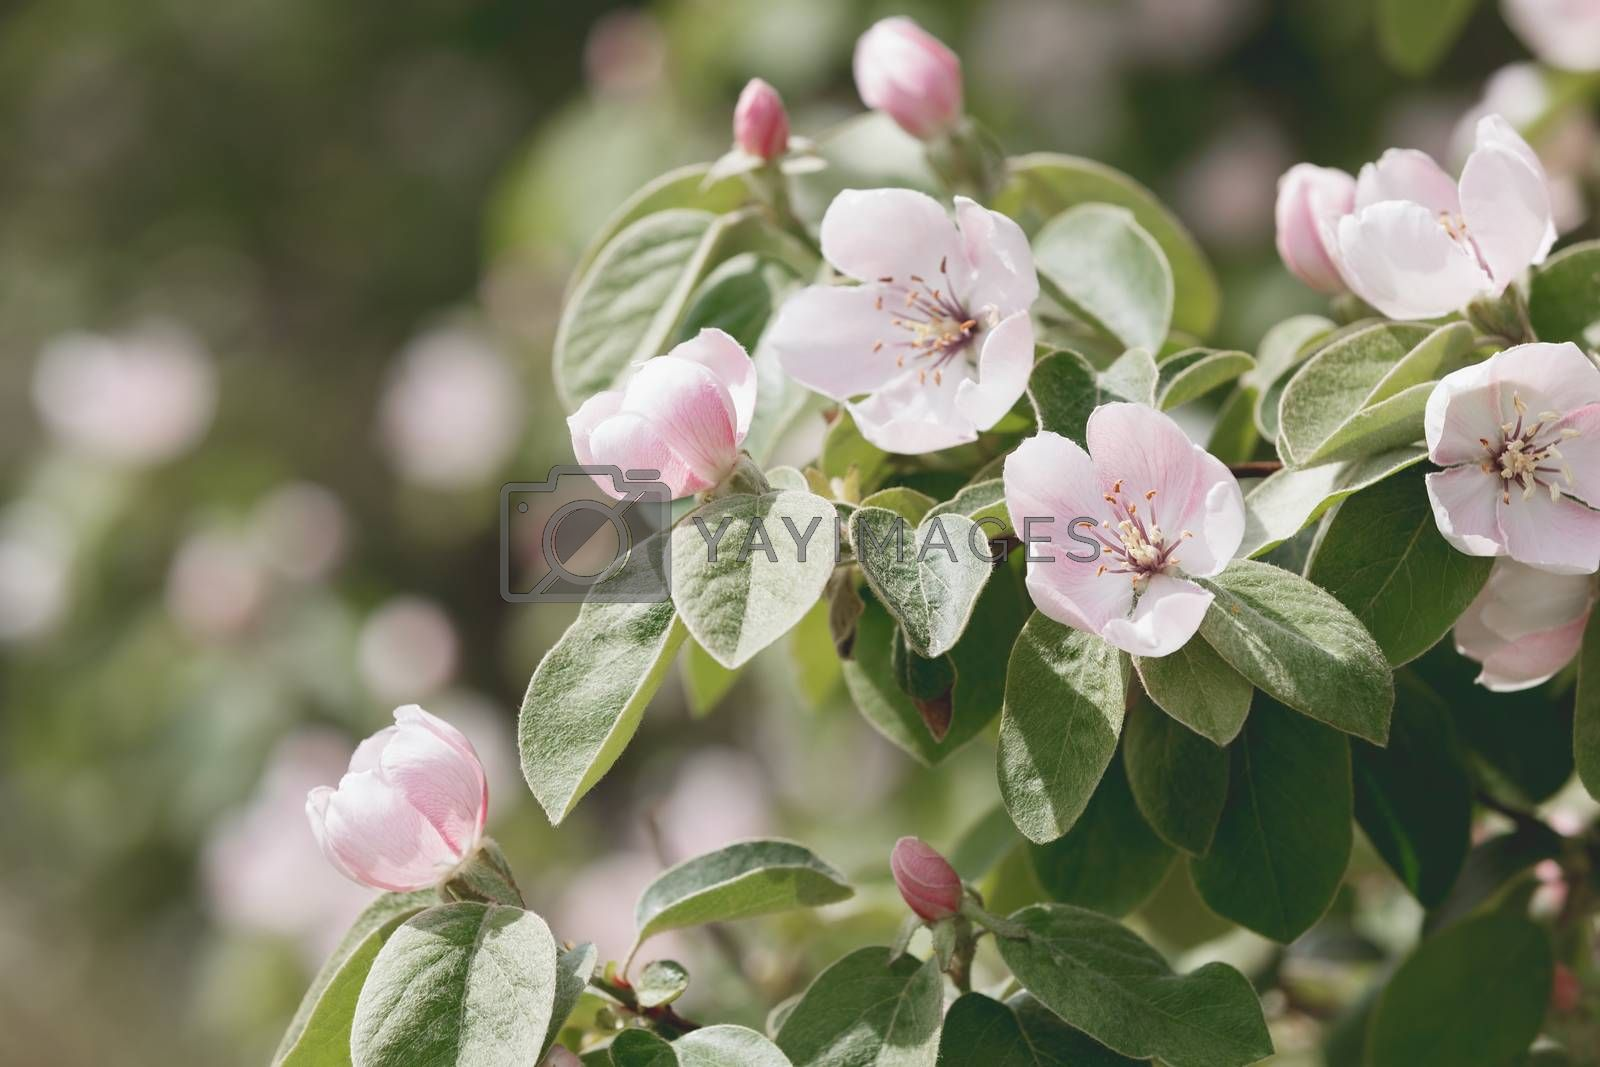 Blossoms of flowering quince by Slast20